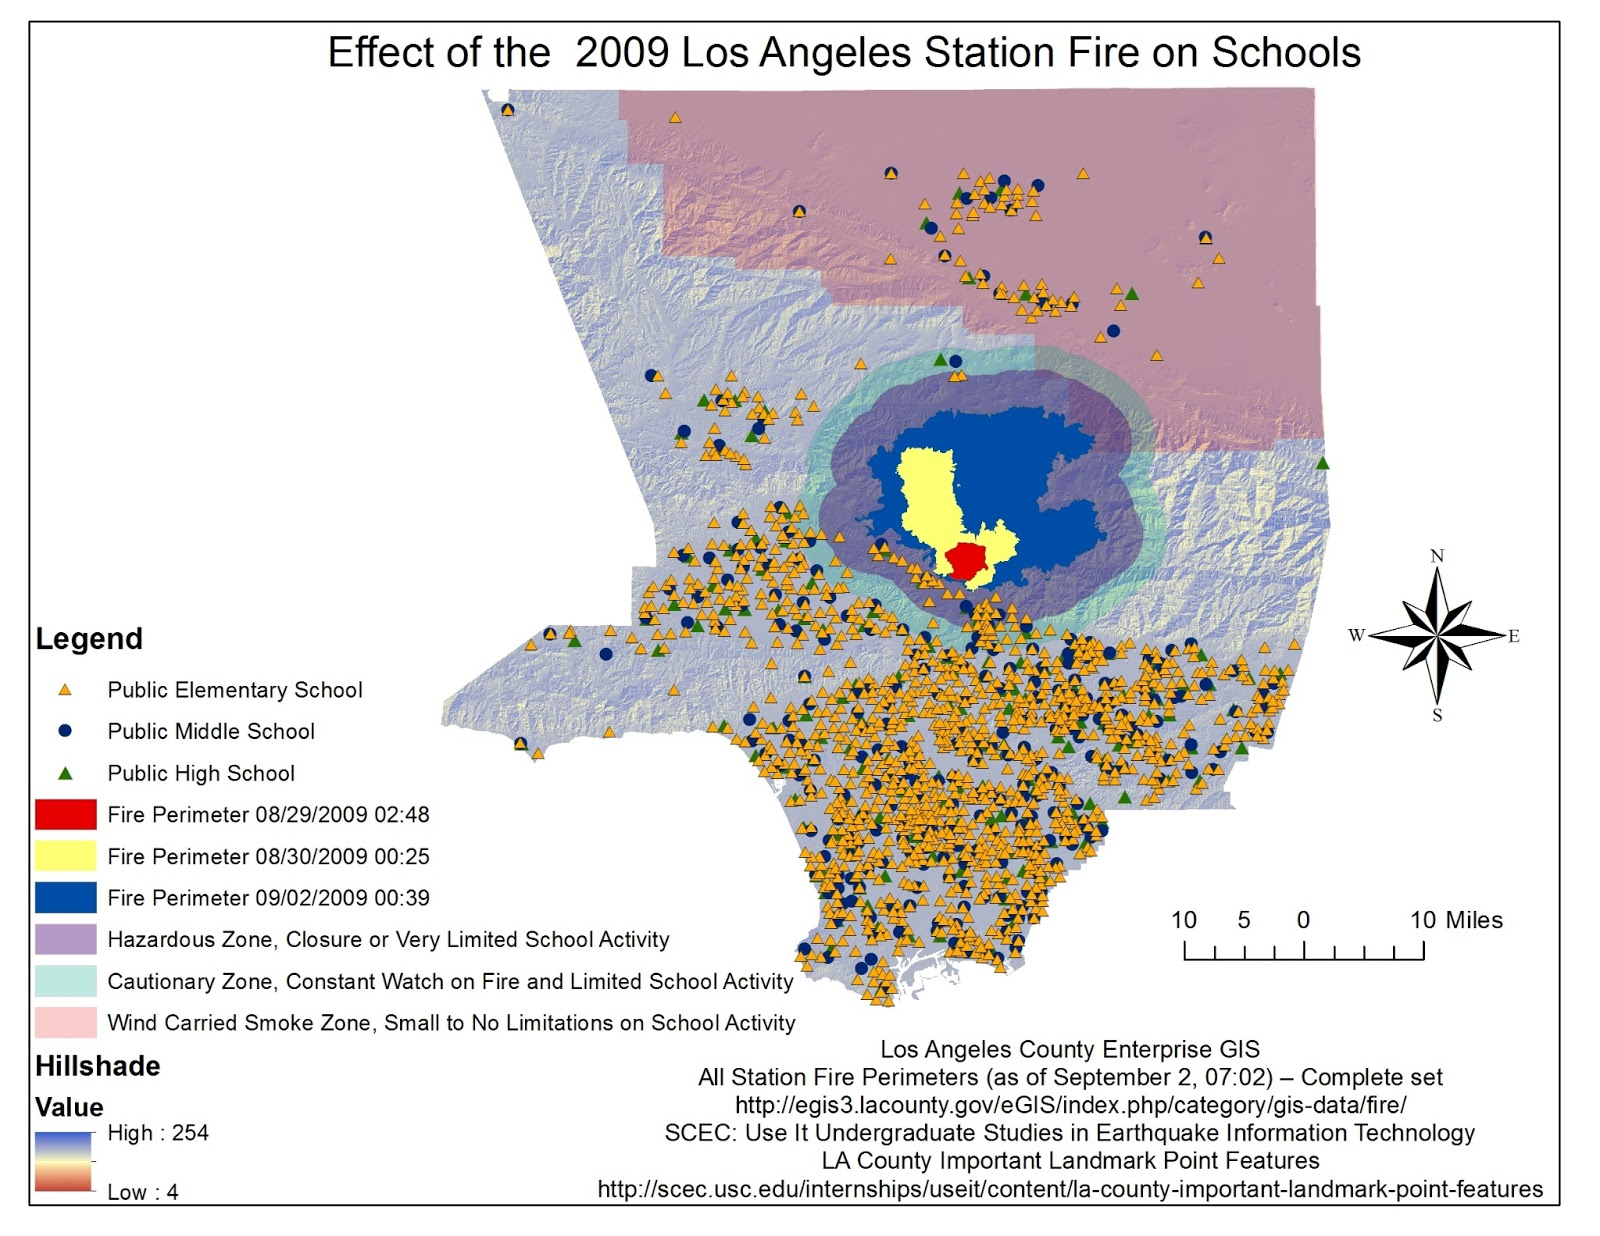 the 2009 los angeles station fire was one of the worst fires that california had experienced in past century the fire began around august 25